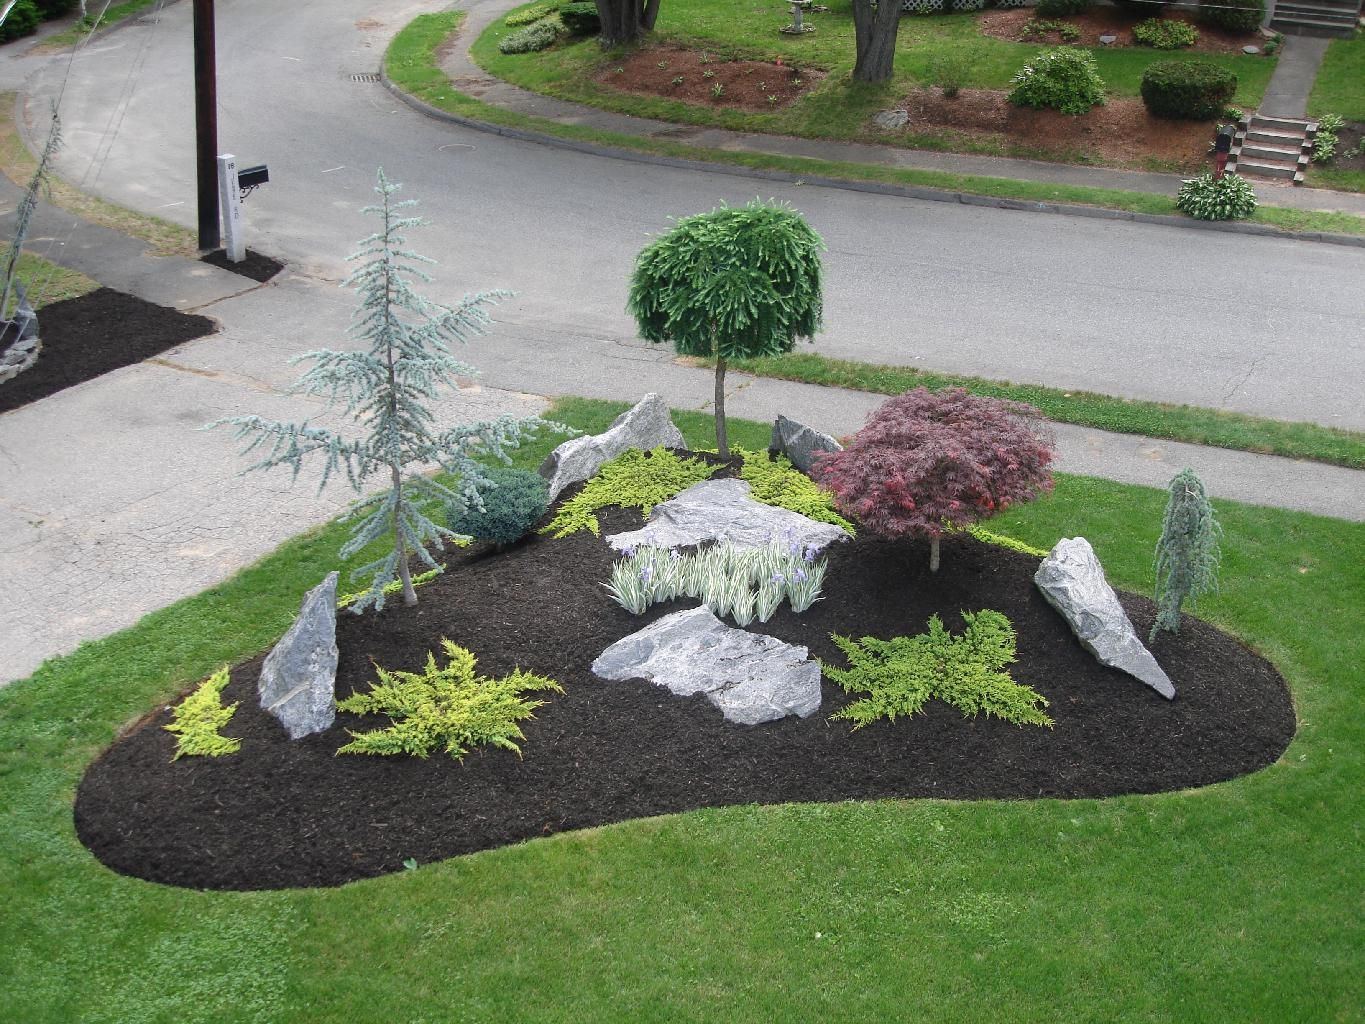 Simple landscape designs with rock beds google search for Simple front landscape ideas